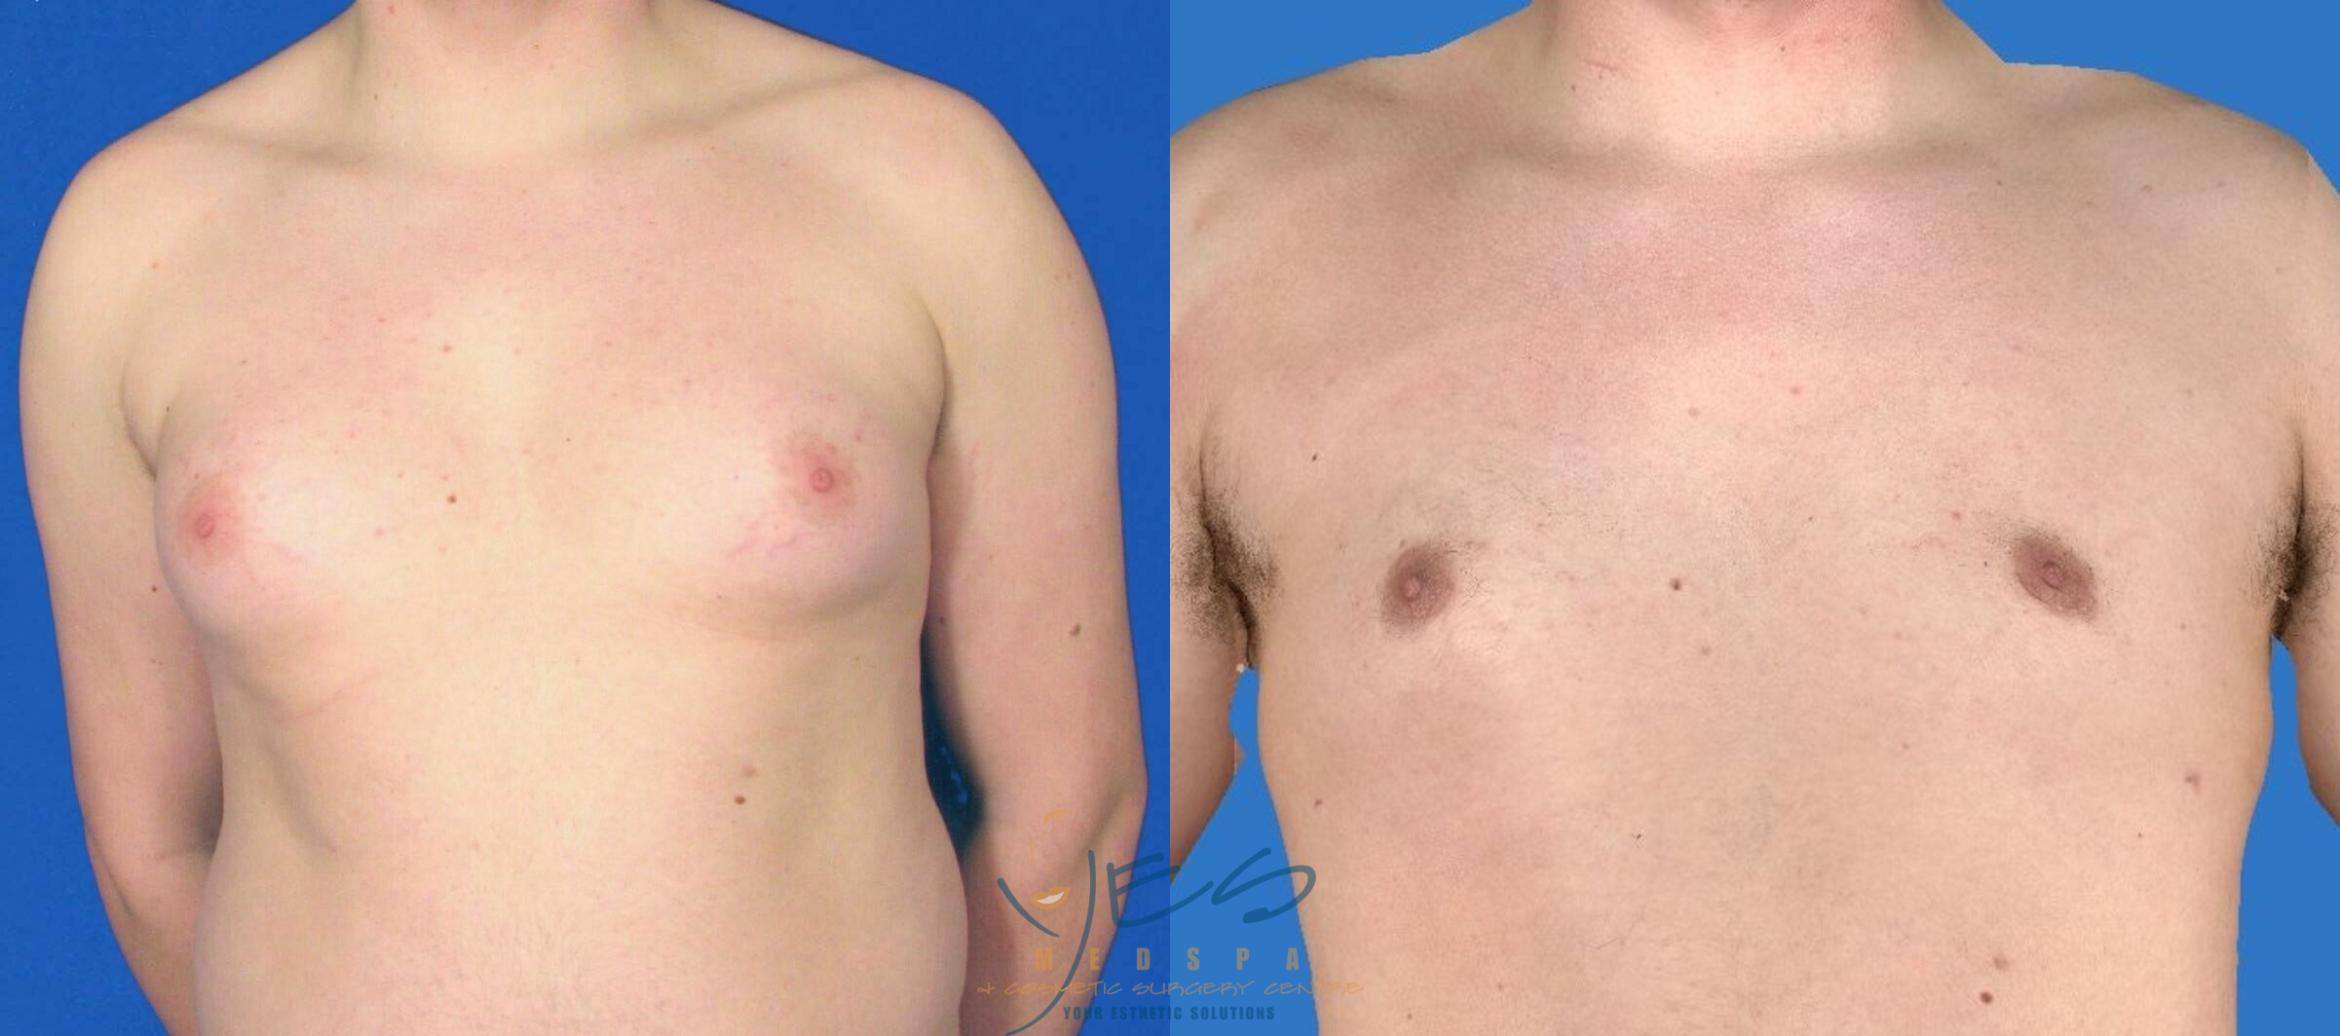 Male Breast Reduction Case 87 Before & After View #1 | Vancouver, BC | YES Medspa & Cosmetic Surgery Centre